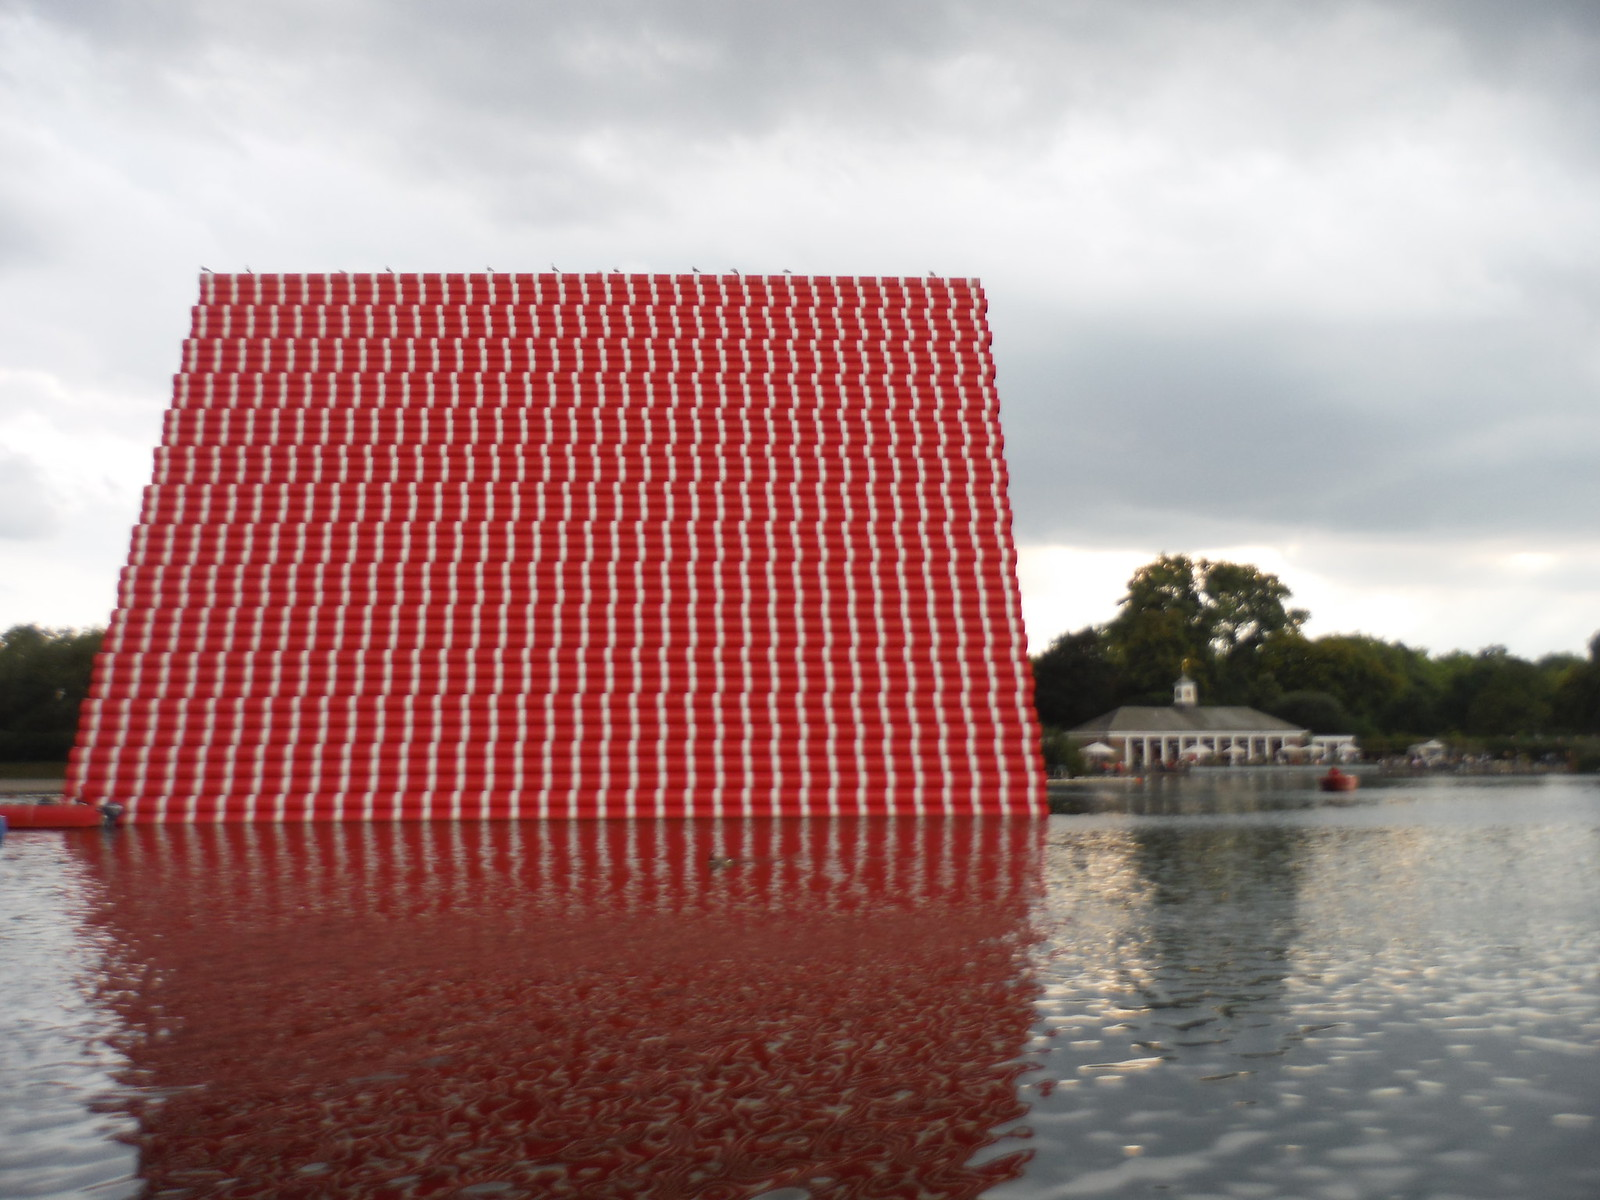 Christo, The London Mastaba, from Path along The Serpentine SWC Short Walk 19 - Royal Parks